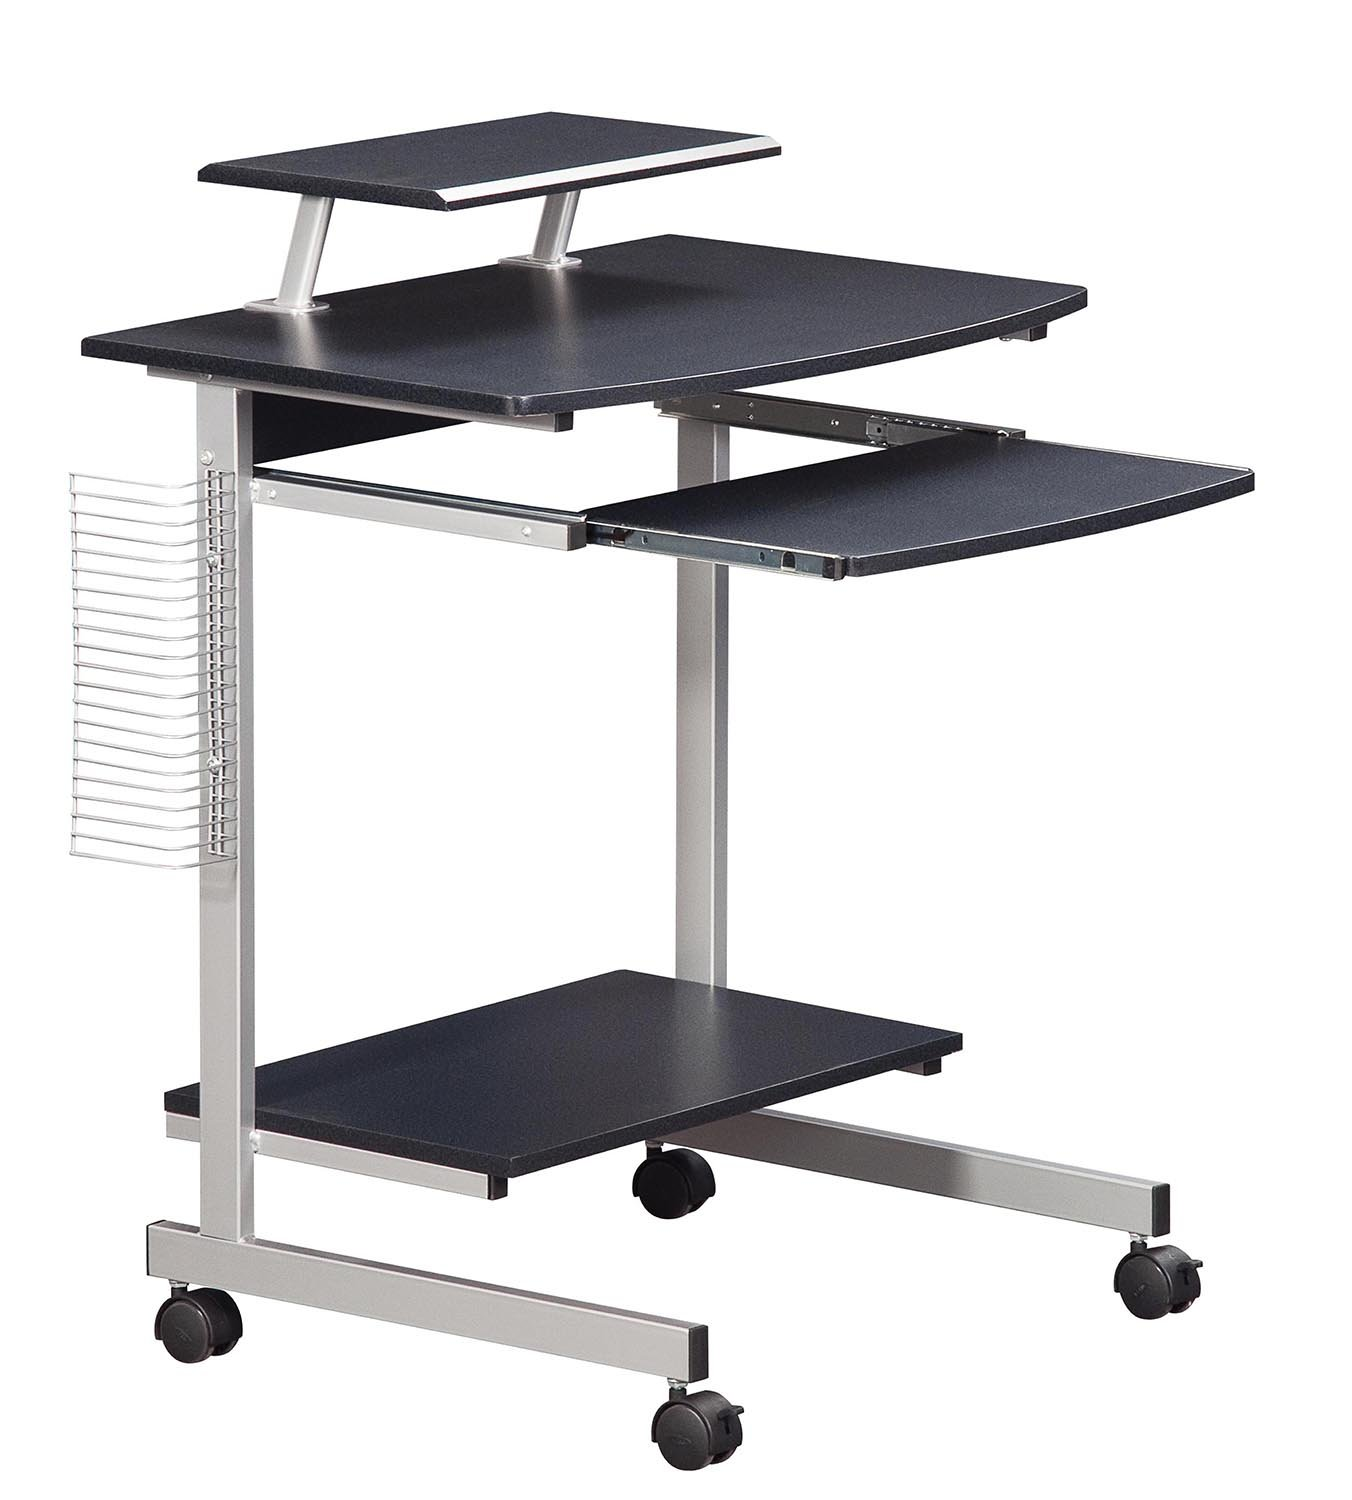 Amazon.com: Mobile U0026 Compact Complete Computer Workstation Desk. Color:  Graphite: Kitchen U0026 Dining